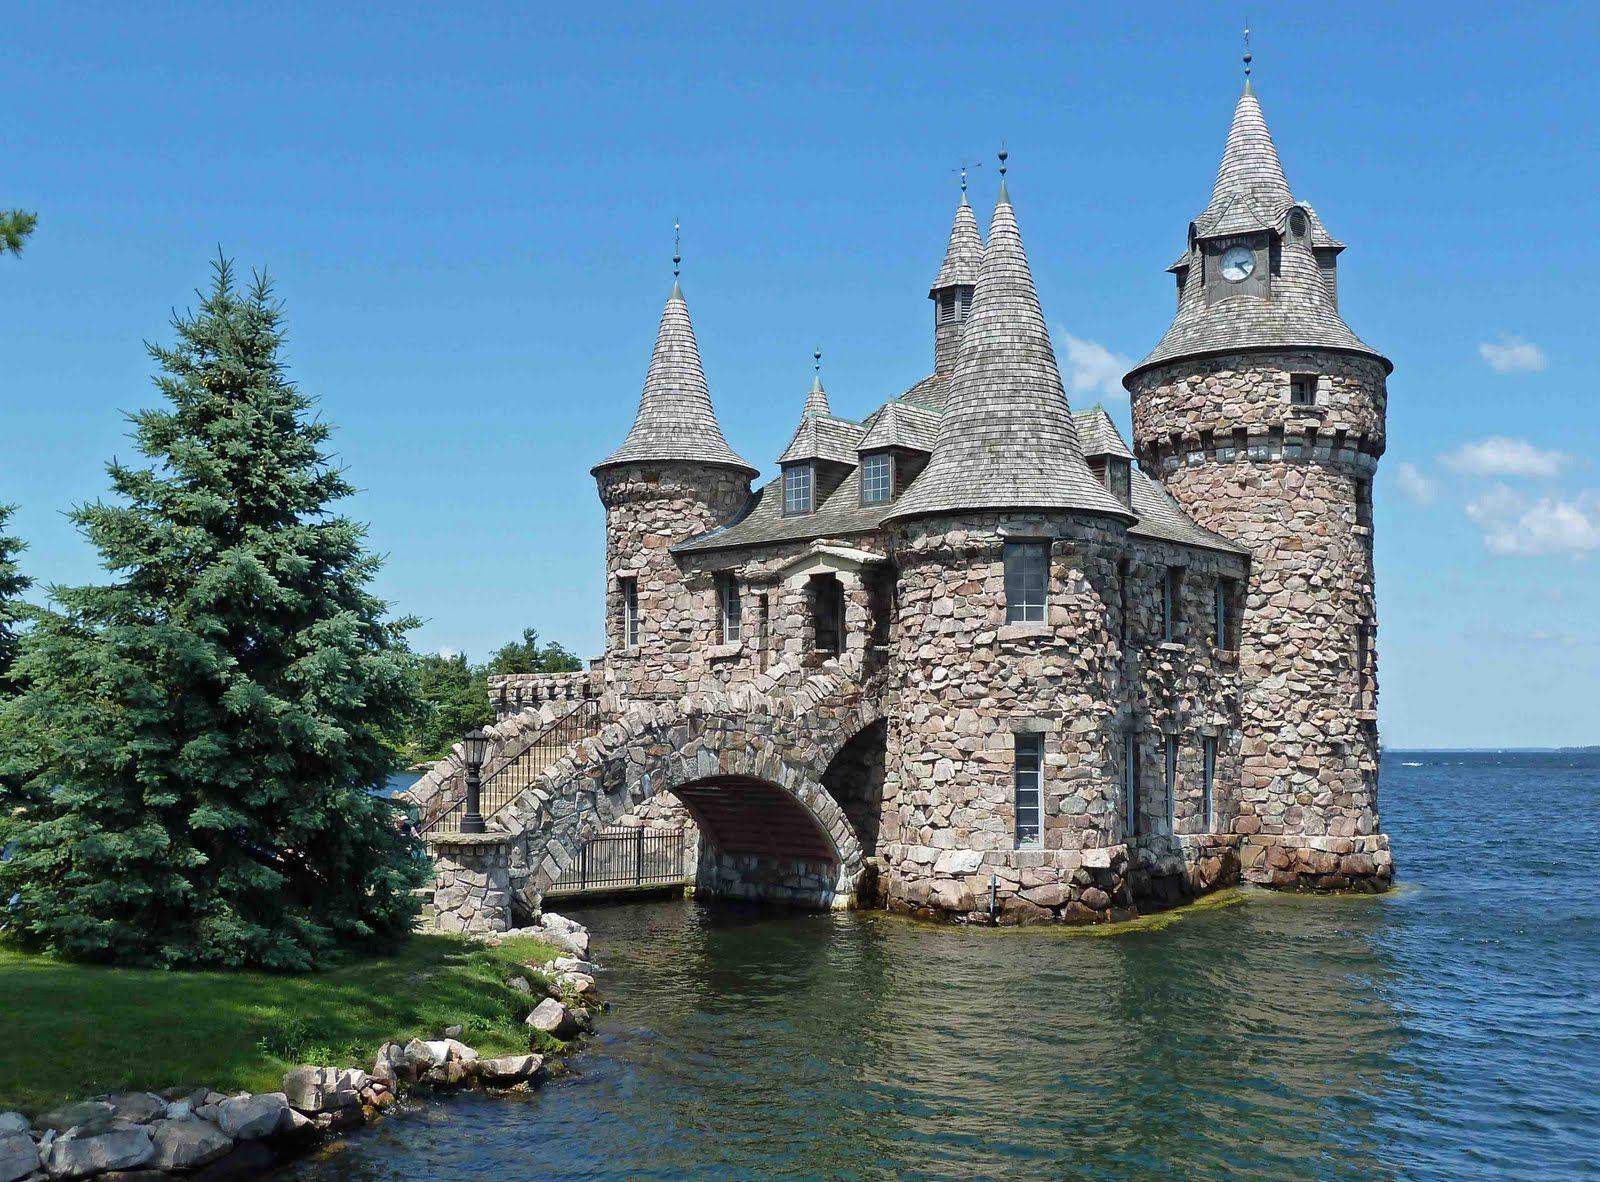 mini castle house plans last dance boldt castle heart island mini castle house plans last dance boldt castle heart island 1000 islands